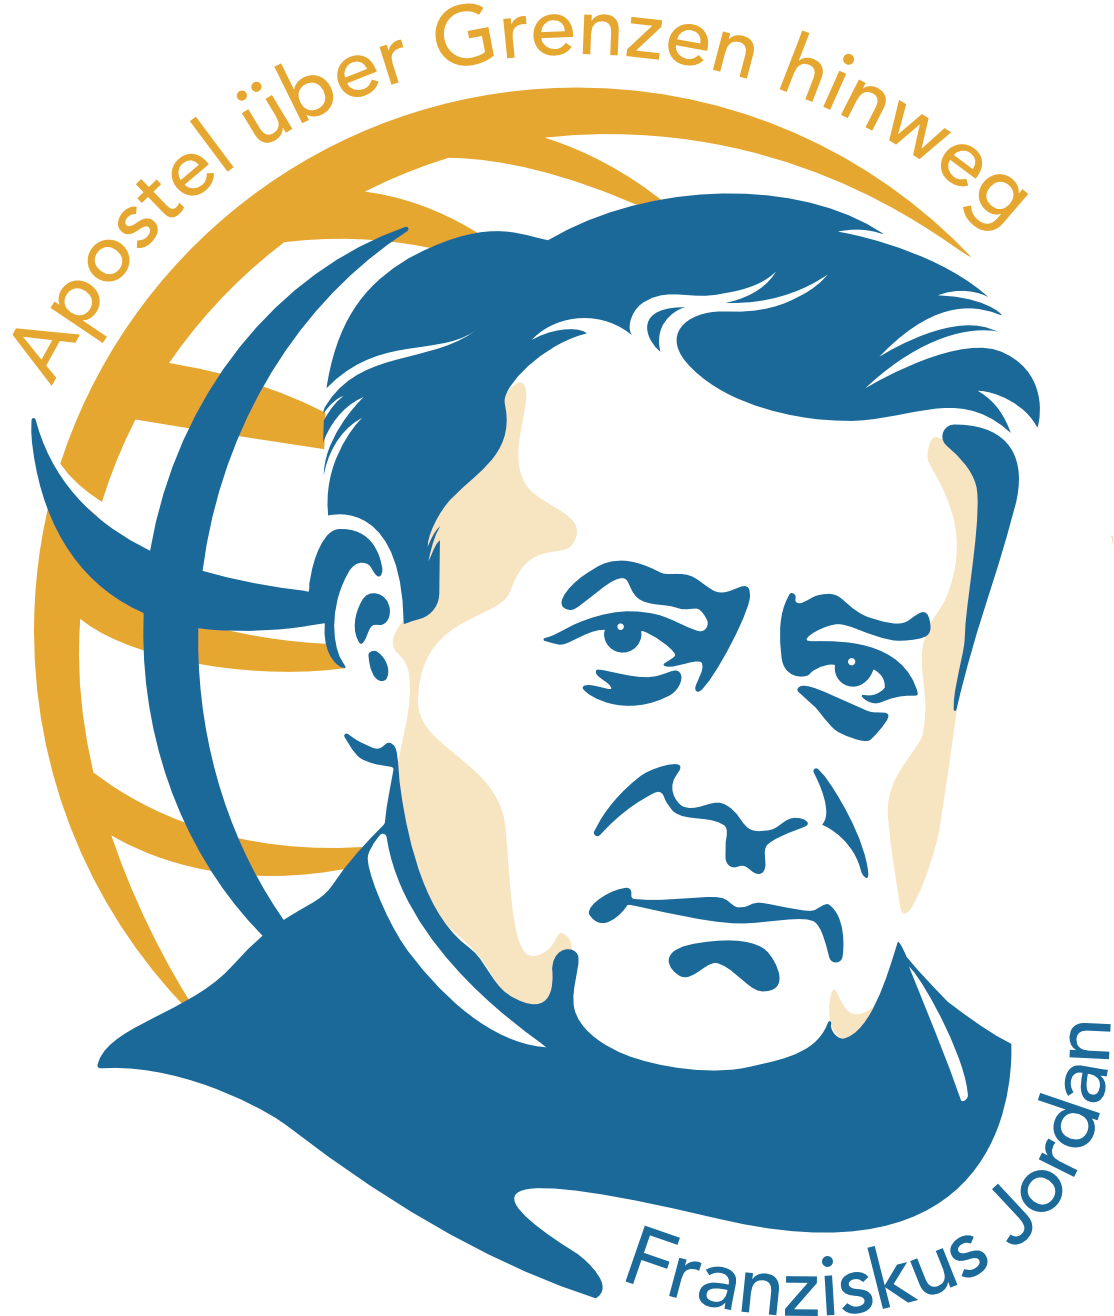 beatification logo German